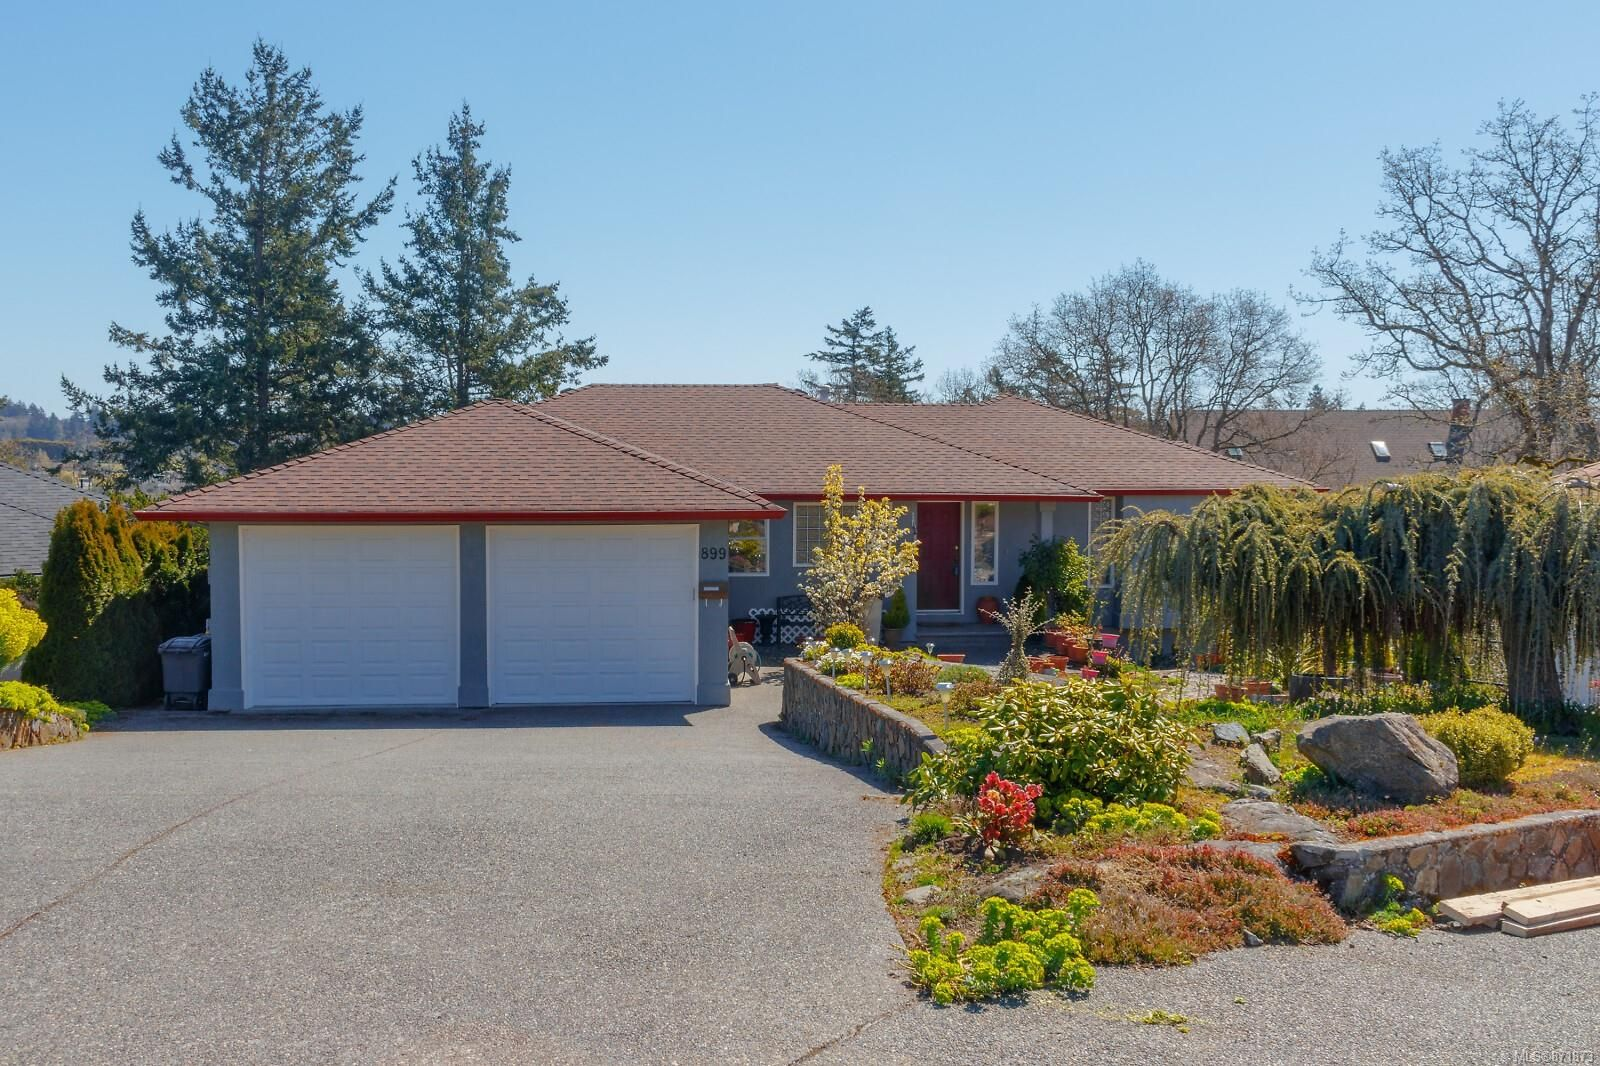 Main Photo: 899 Currandale Crt in : SE Lake Hill House for sale (Saanich East)  : MLS®# 871873